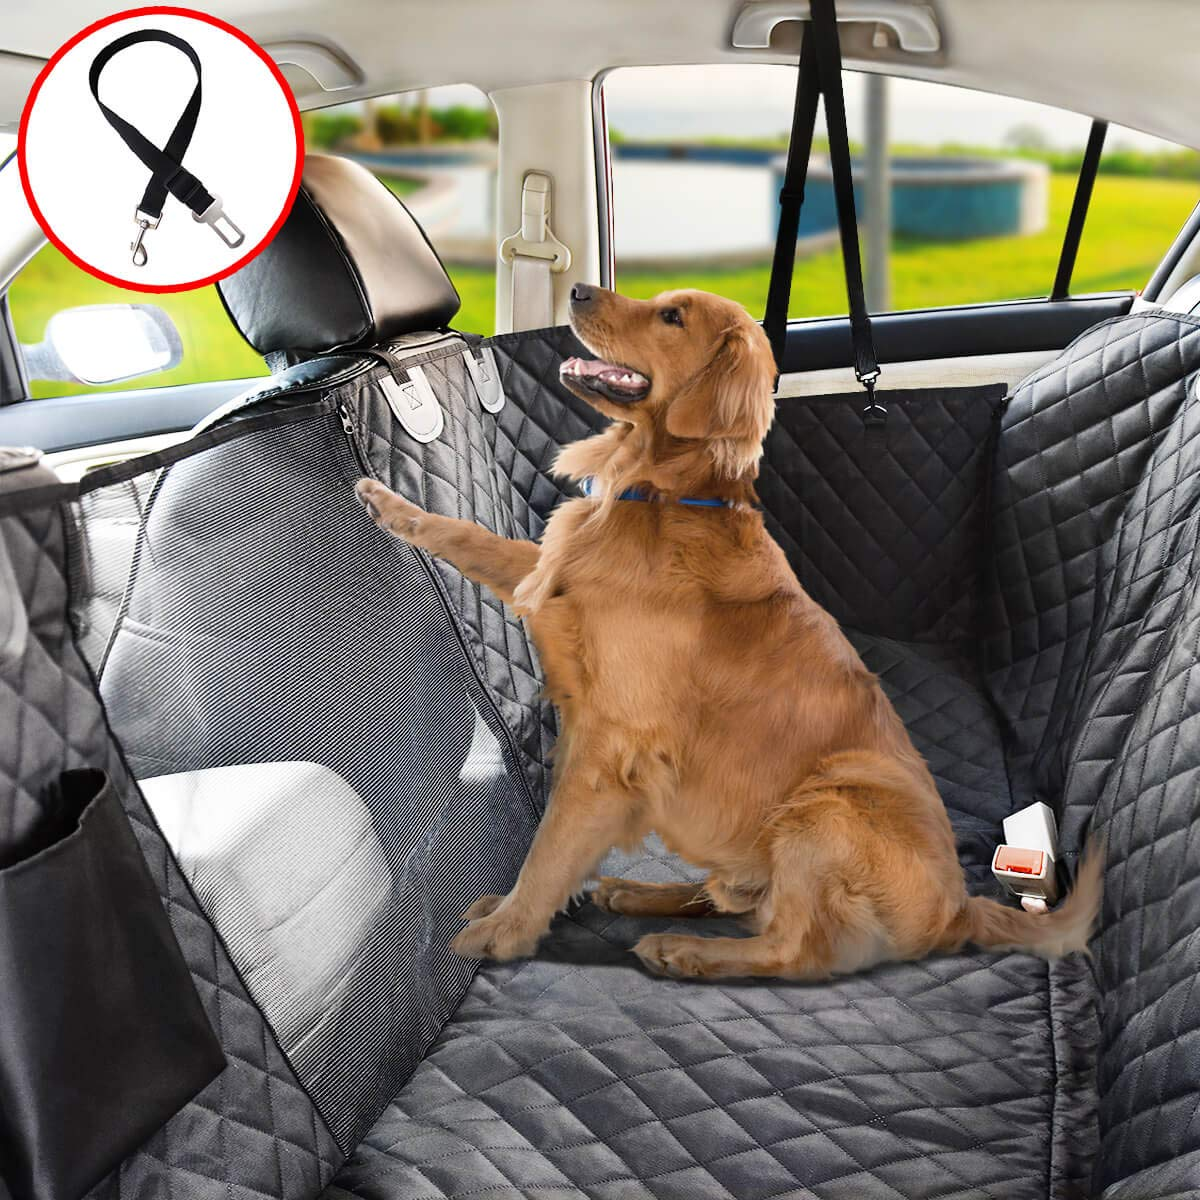 Vailge Dog Seat Cover for Back Seat, 100% Waterproof Dog Car Seat Covers with Mesh Window, Scratch Proof Nonslip Dog Car Hammock, Car Seat Covers for Dogs, Dog Backseat Cover for Cars SUV - Standard by Vailge